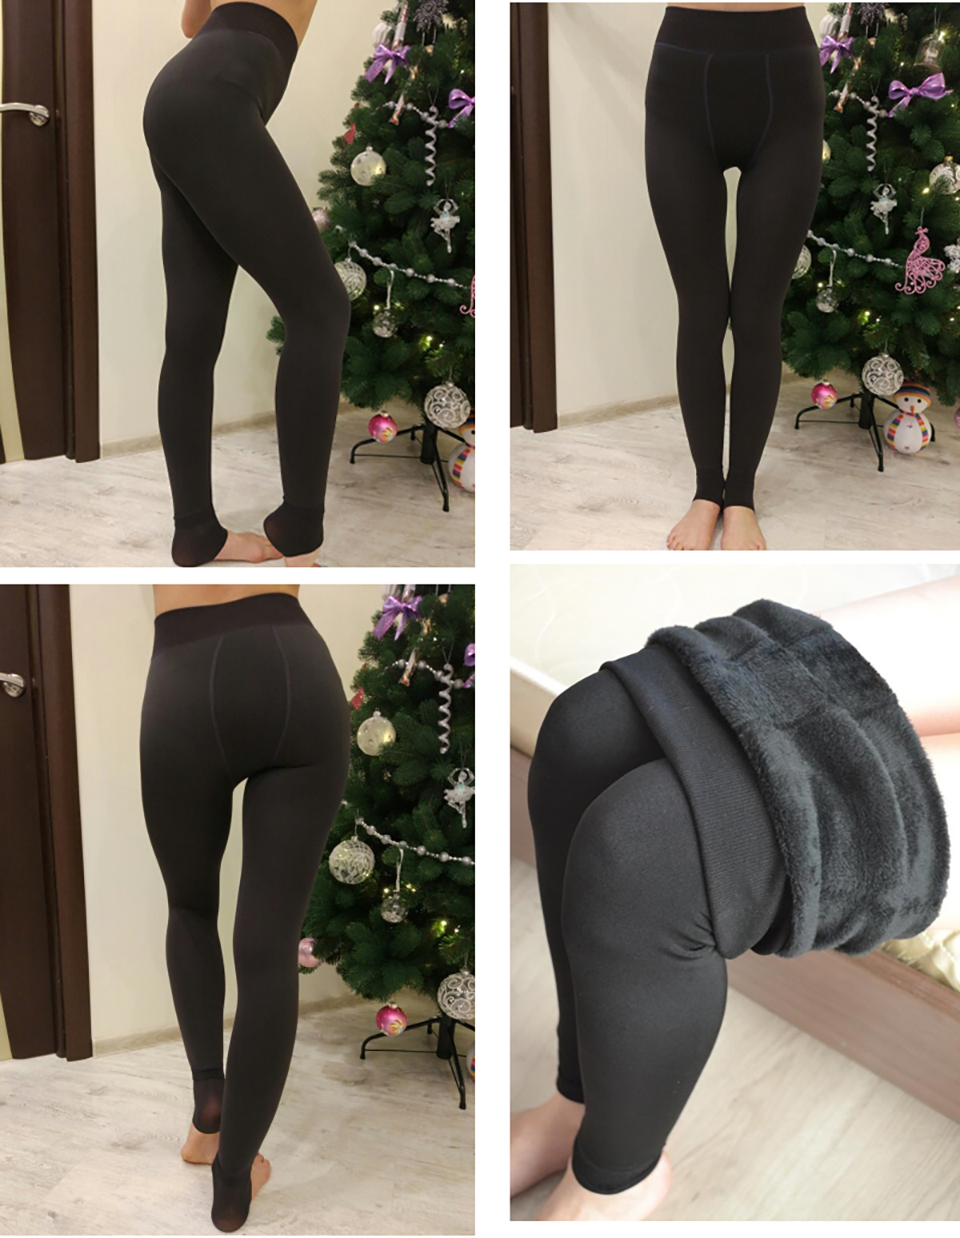 SALSPOR S-3XL Solid Color Women Winter Velet Trousers Female High Elastic Warm Nine pants Ladies Sexy High Waist Slim Leggins 26